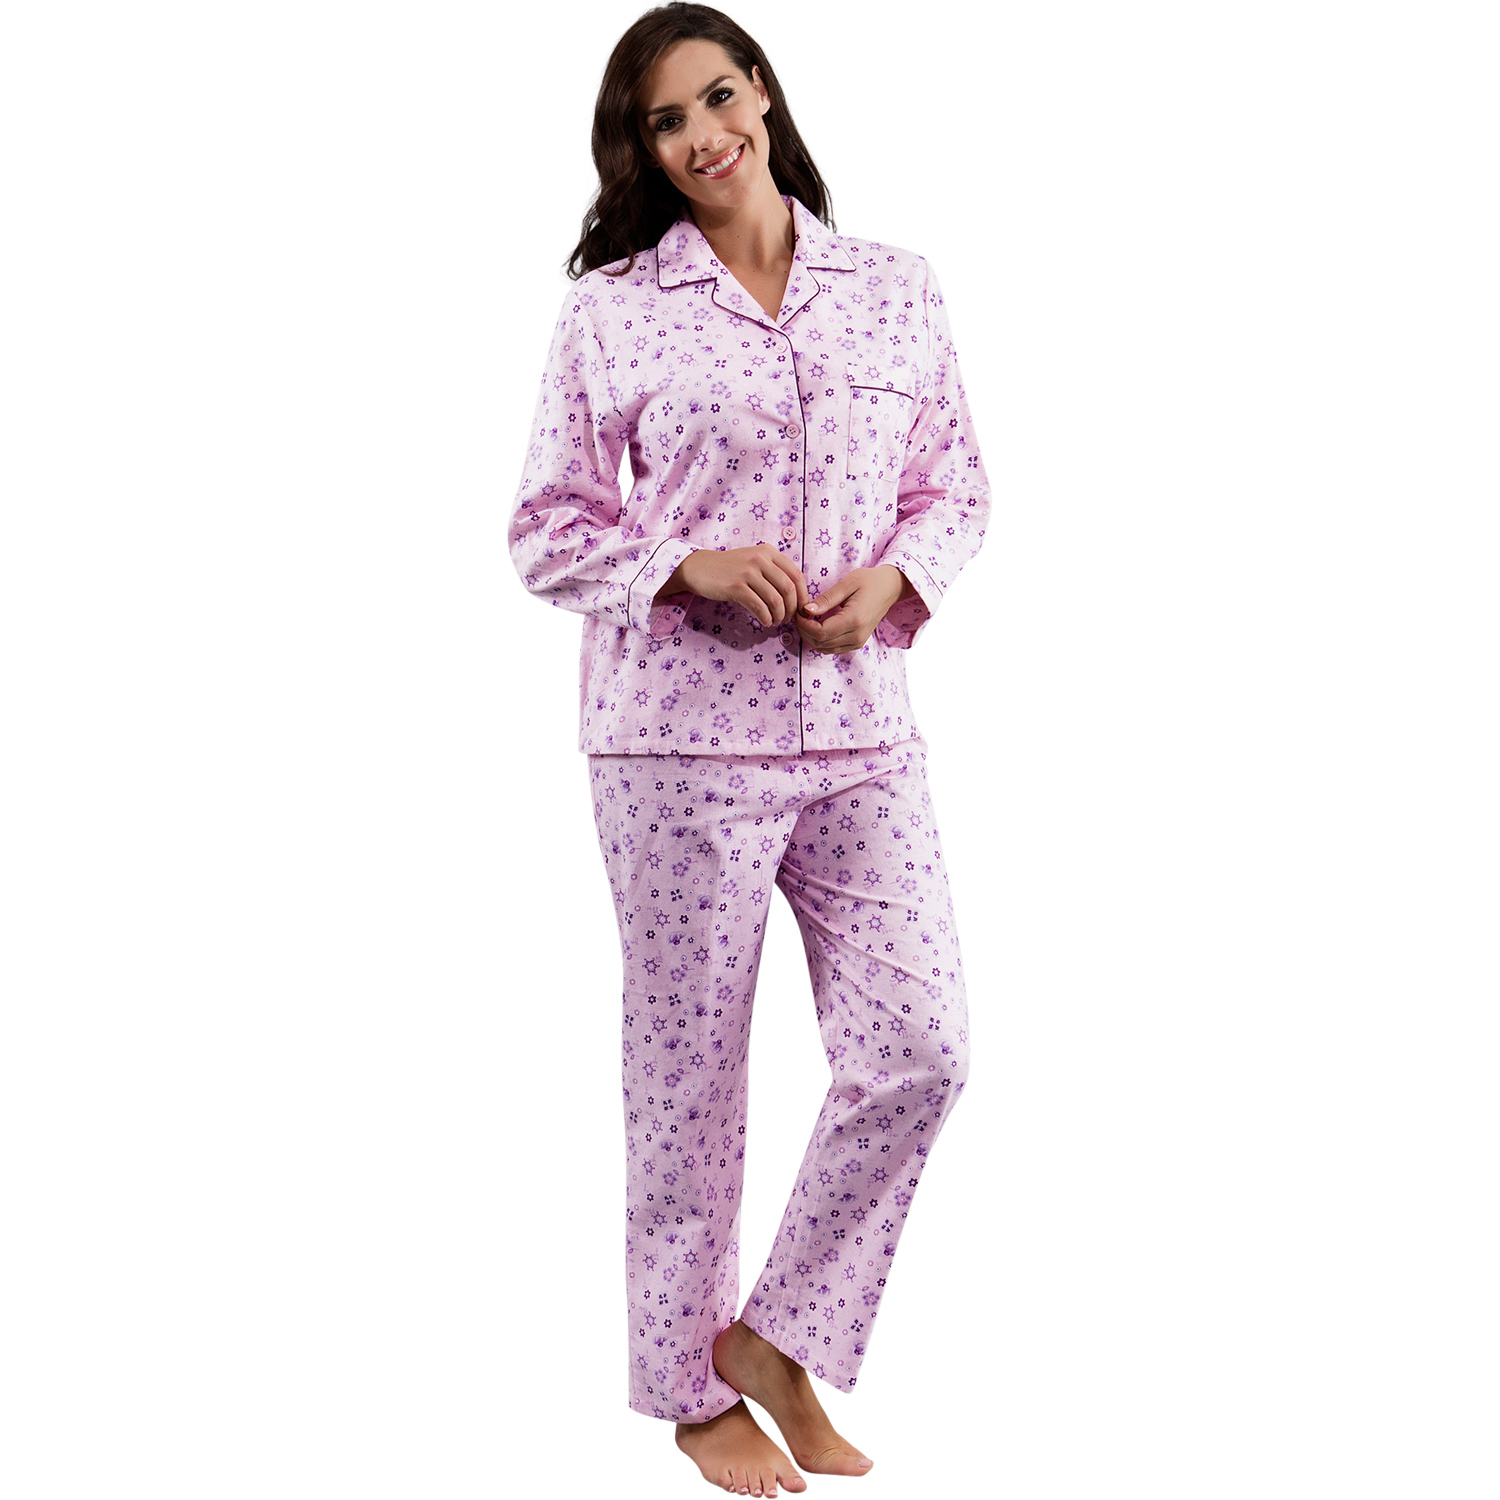 Cut-price pyjamas come in cute prints, with pjs sets our hero sale buy, and no pamper night is complete without a luxuriously soft dressing gown at a discount. Catch your beauty sleep in a bargain buy from the boohoo sleepwear sale.